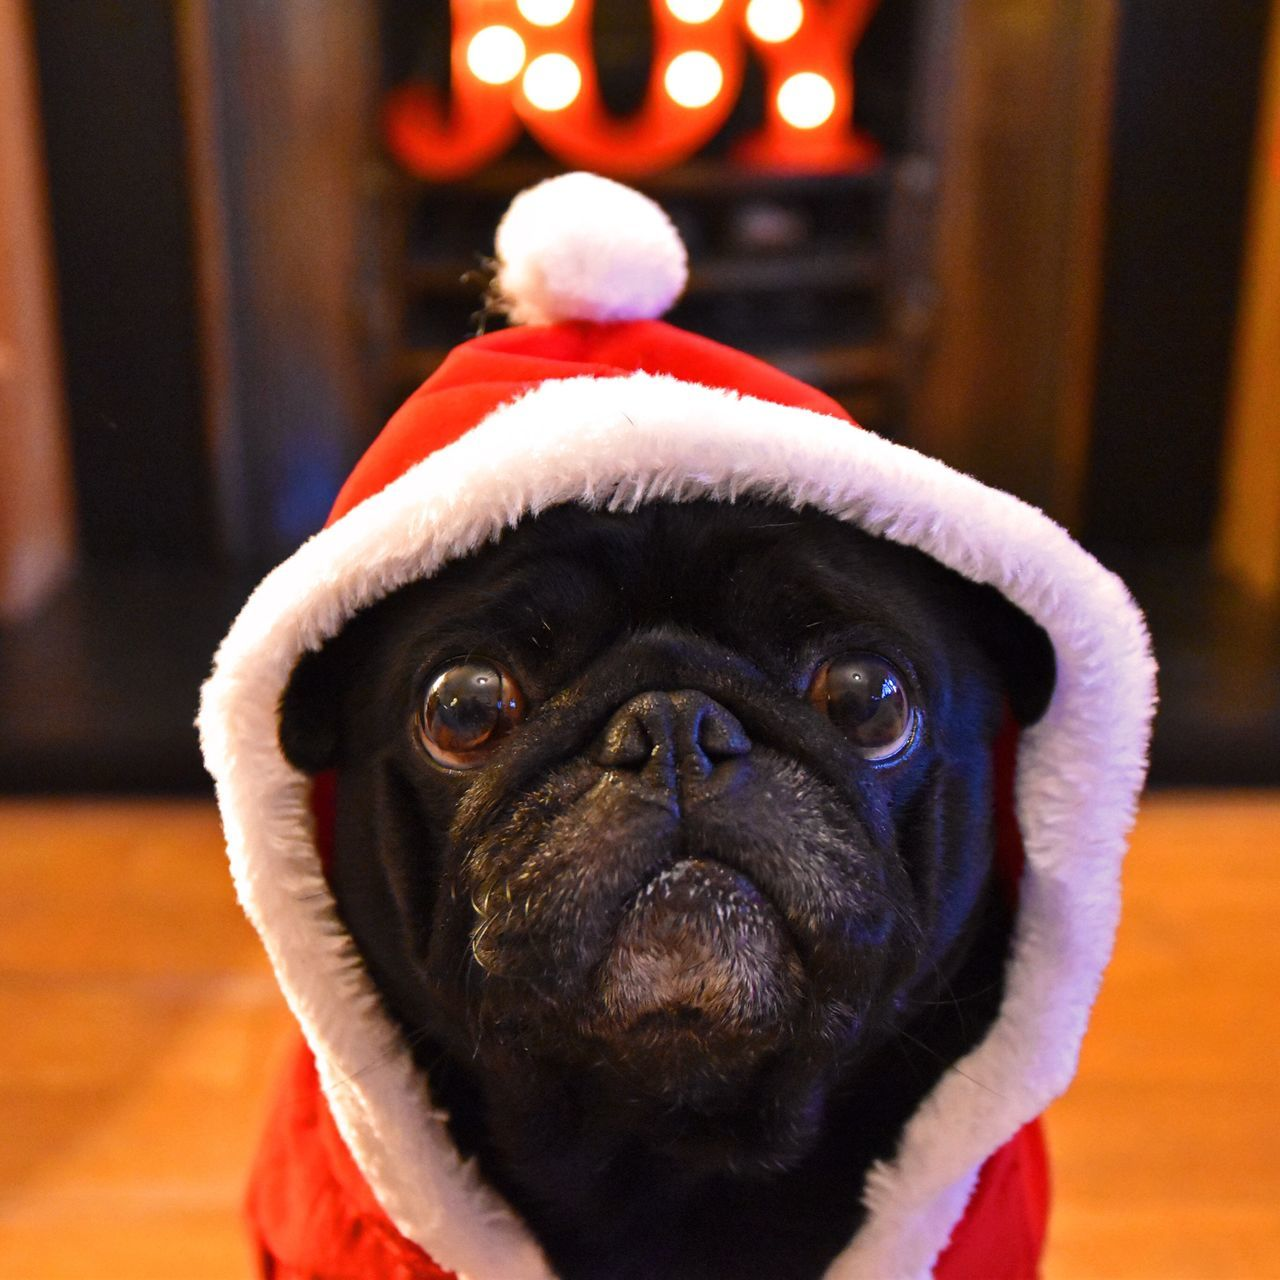 Ready for Christmas Christmas Lights Dog Father Christmas Pug Dogs Cute Cute Pets Pet Photography  Pets Corner Best Christmas Lights